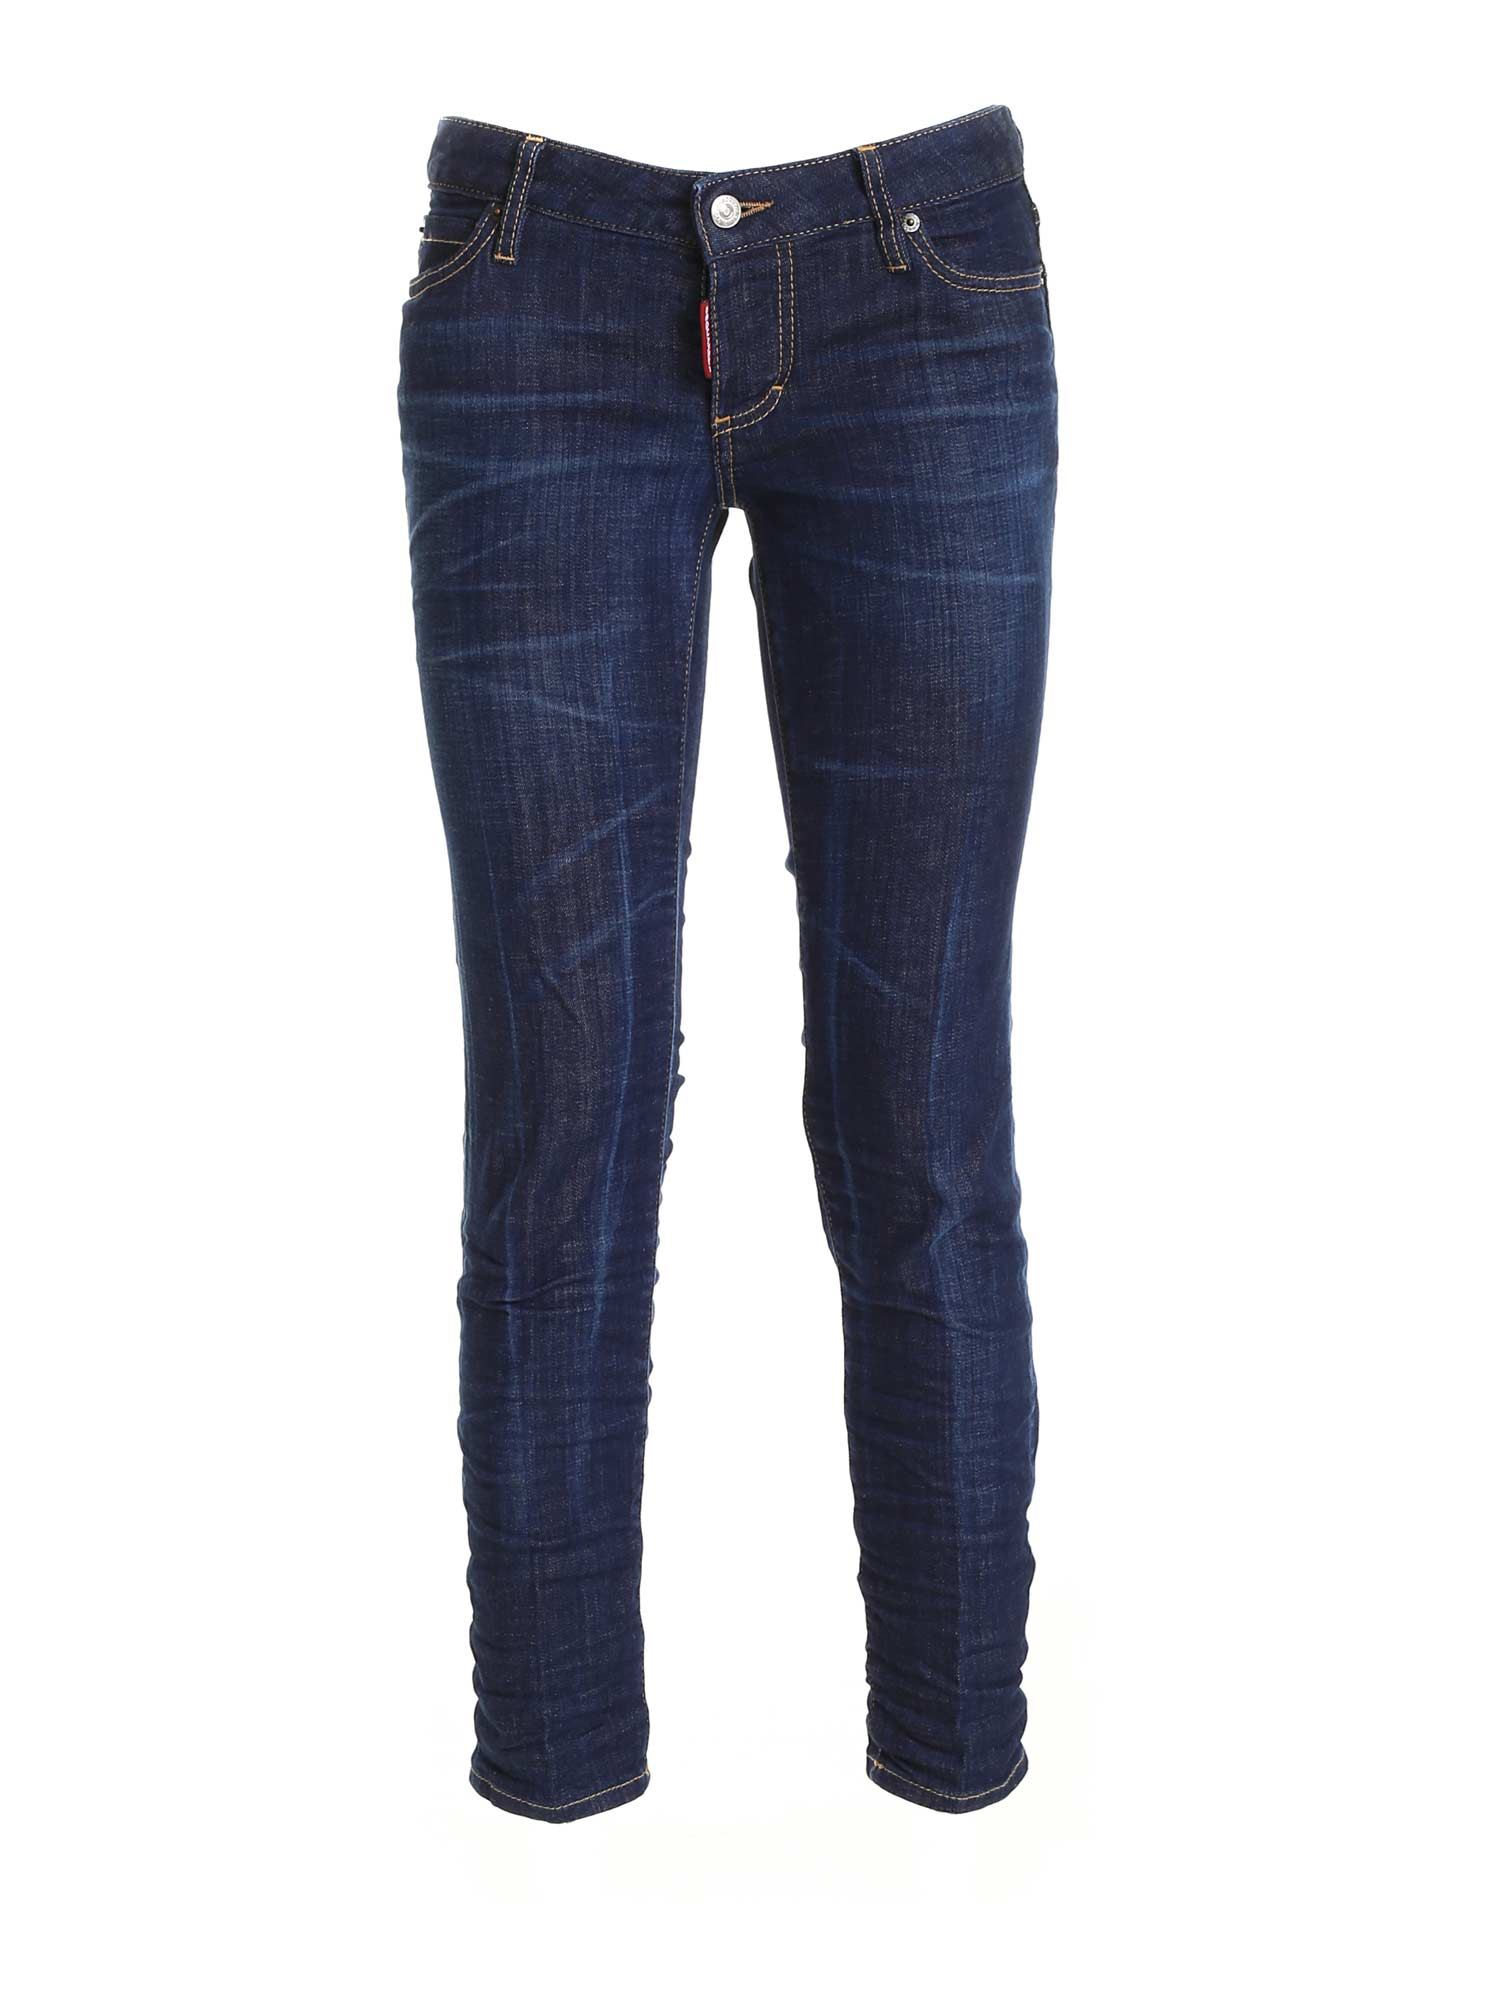 Dsquared2 JENNIFER JEANS IN BLUE